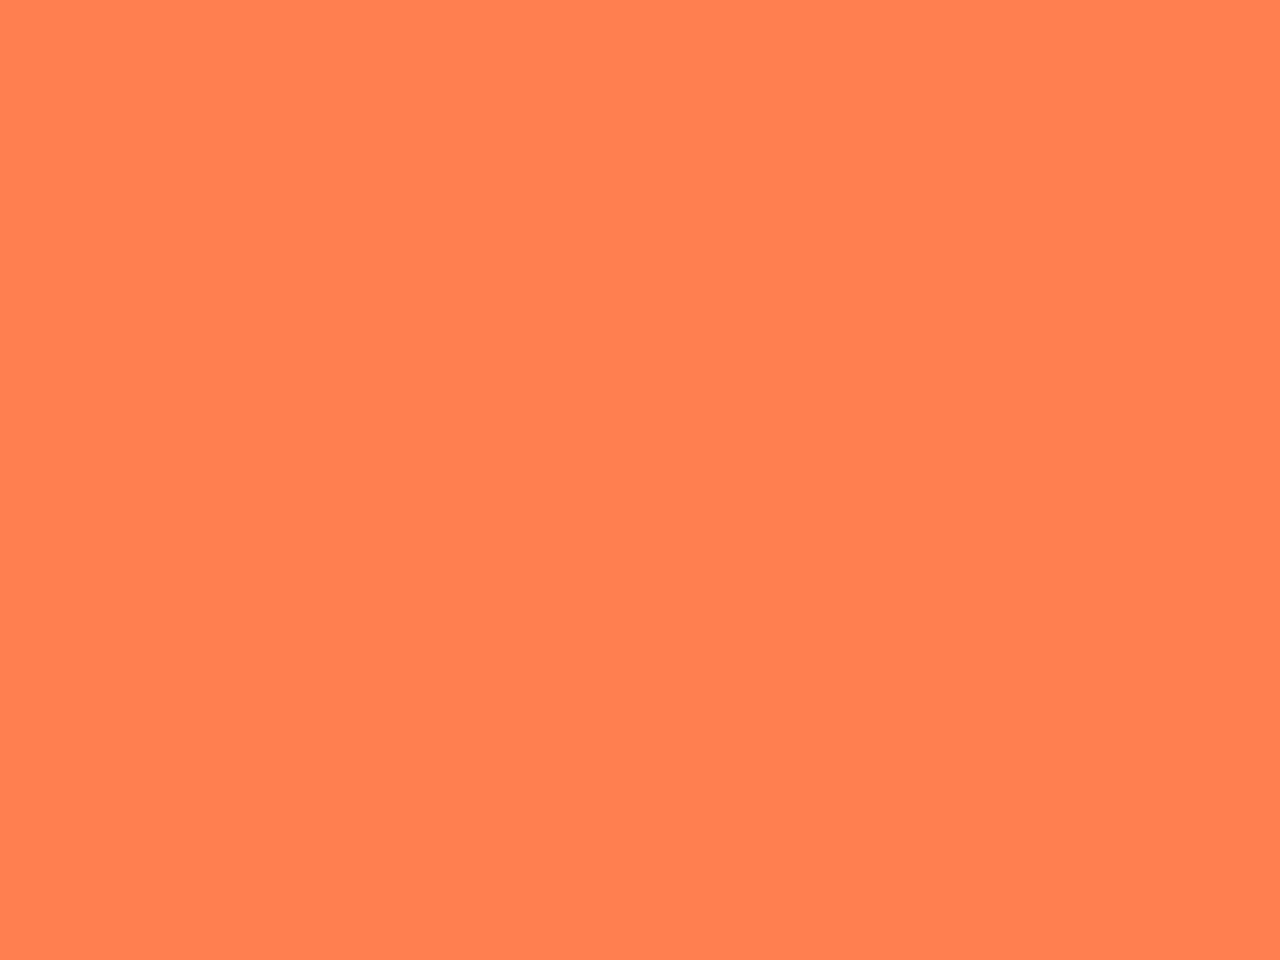 1280x960 Coral Solid Color Background